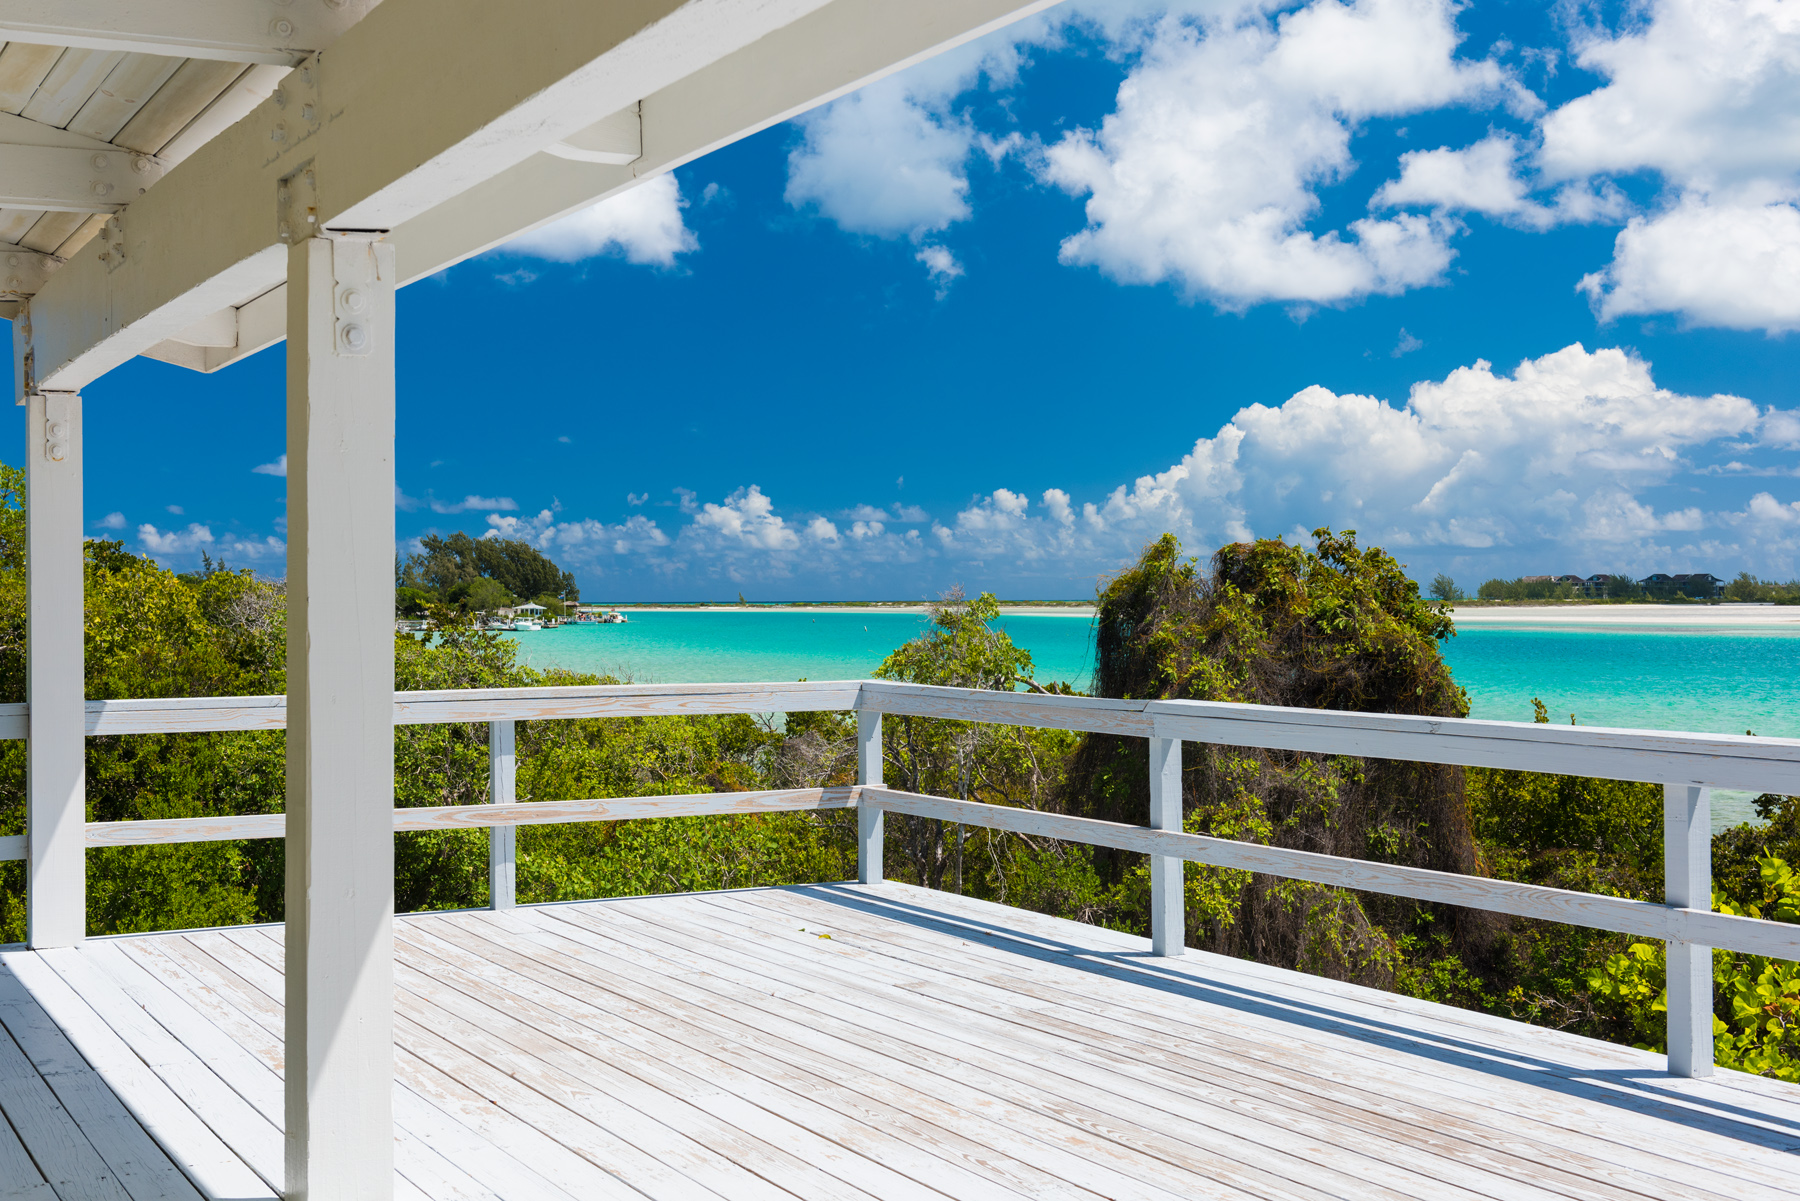 Single Family Home for Sale at Sandcastle on Pine Cay Channel Front Pine Cay, Pine Cay TCI Turks And Caicos Islands